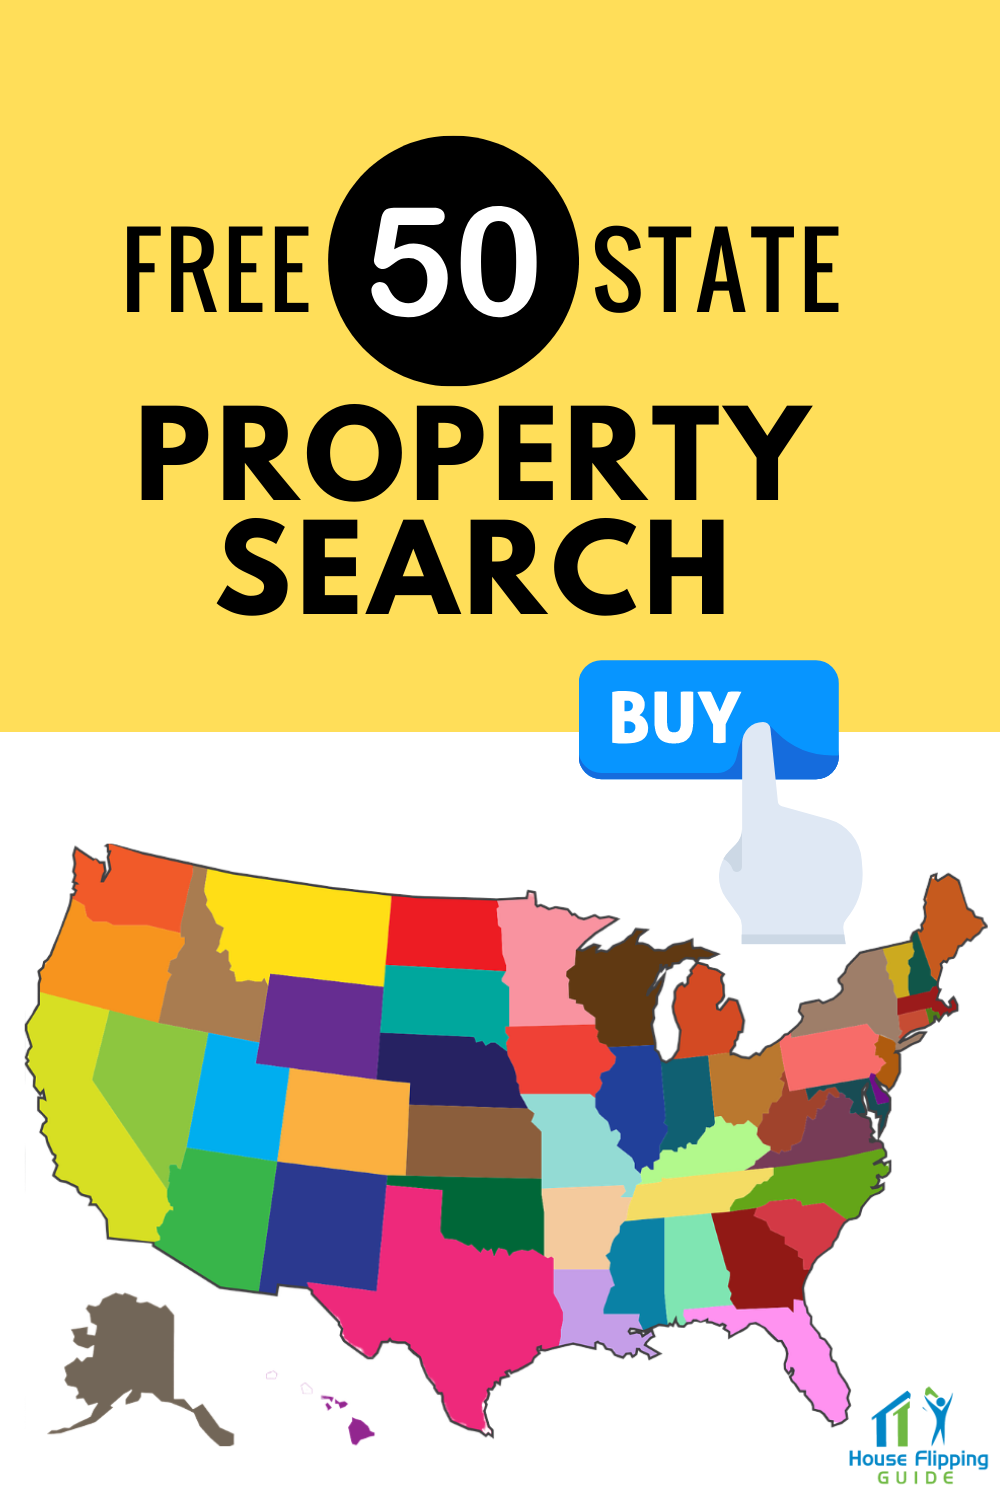 Free 50 State Property Search